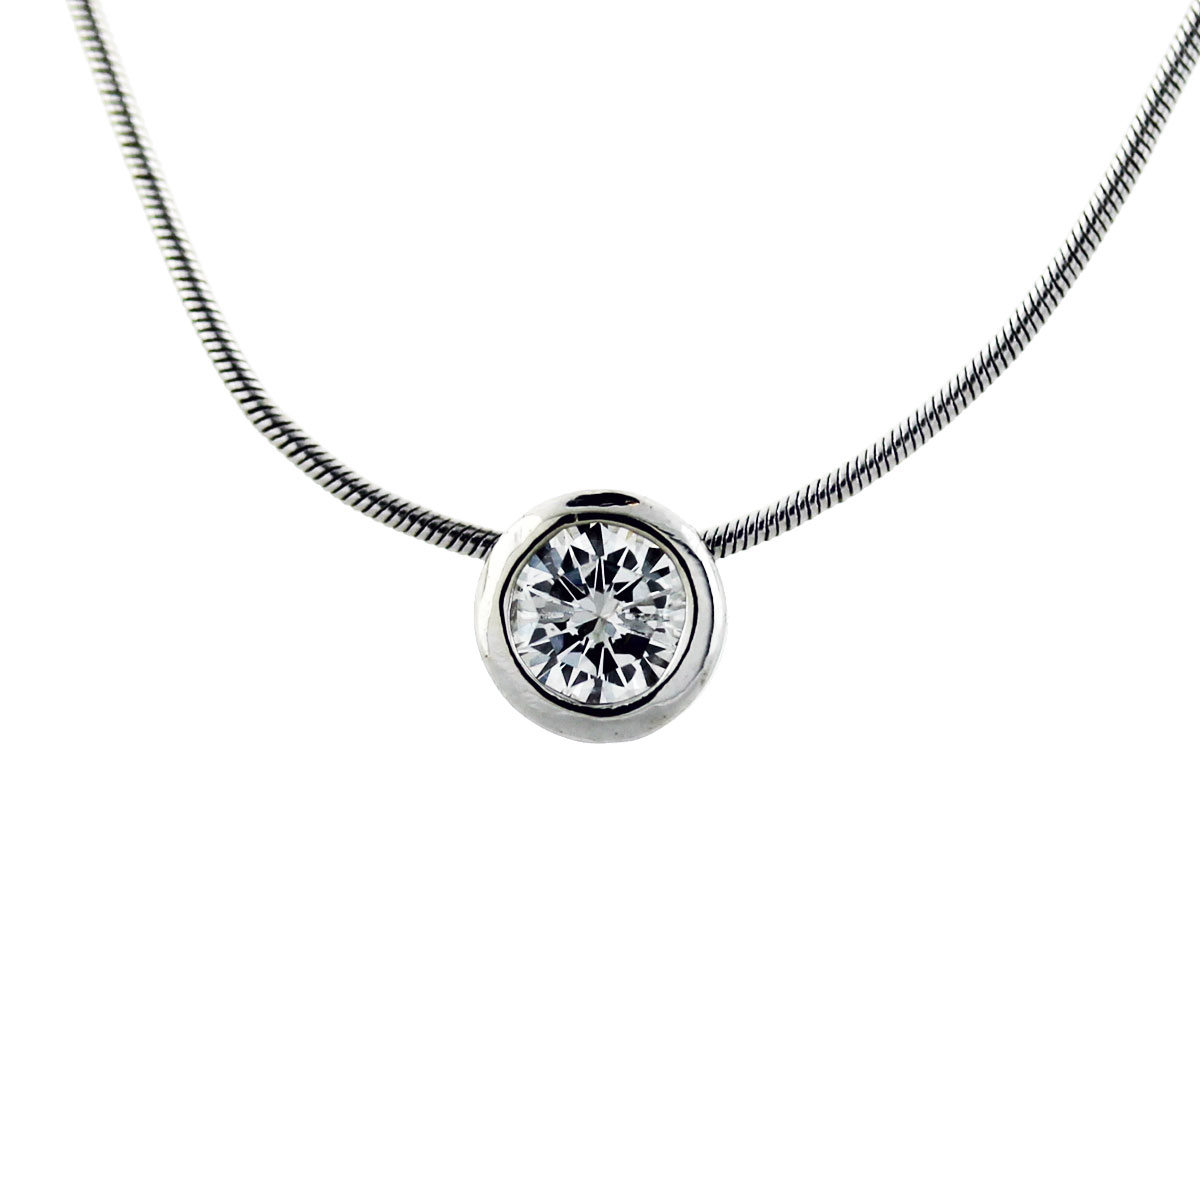 White Gold Bezel Set Diamond Pendant Necklace